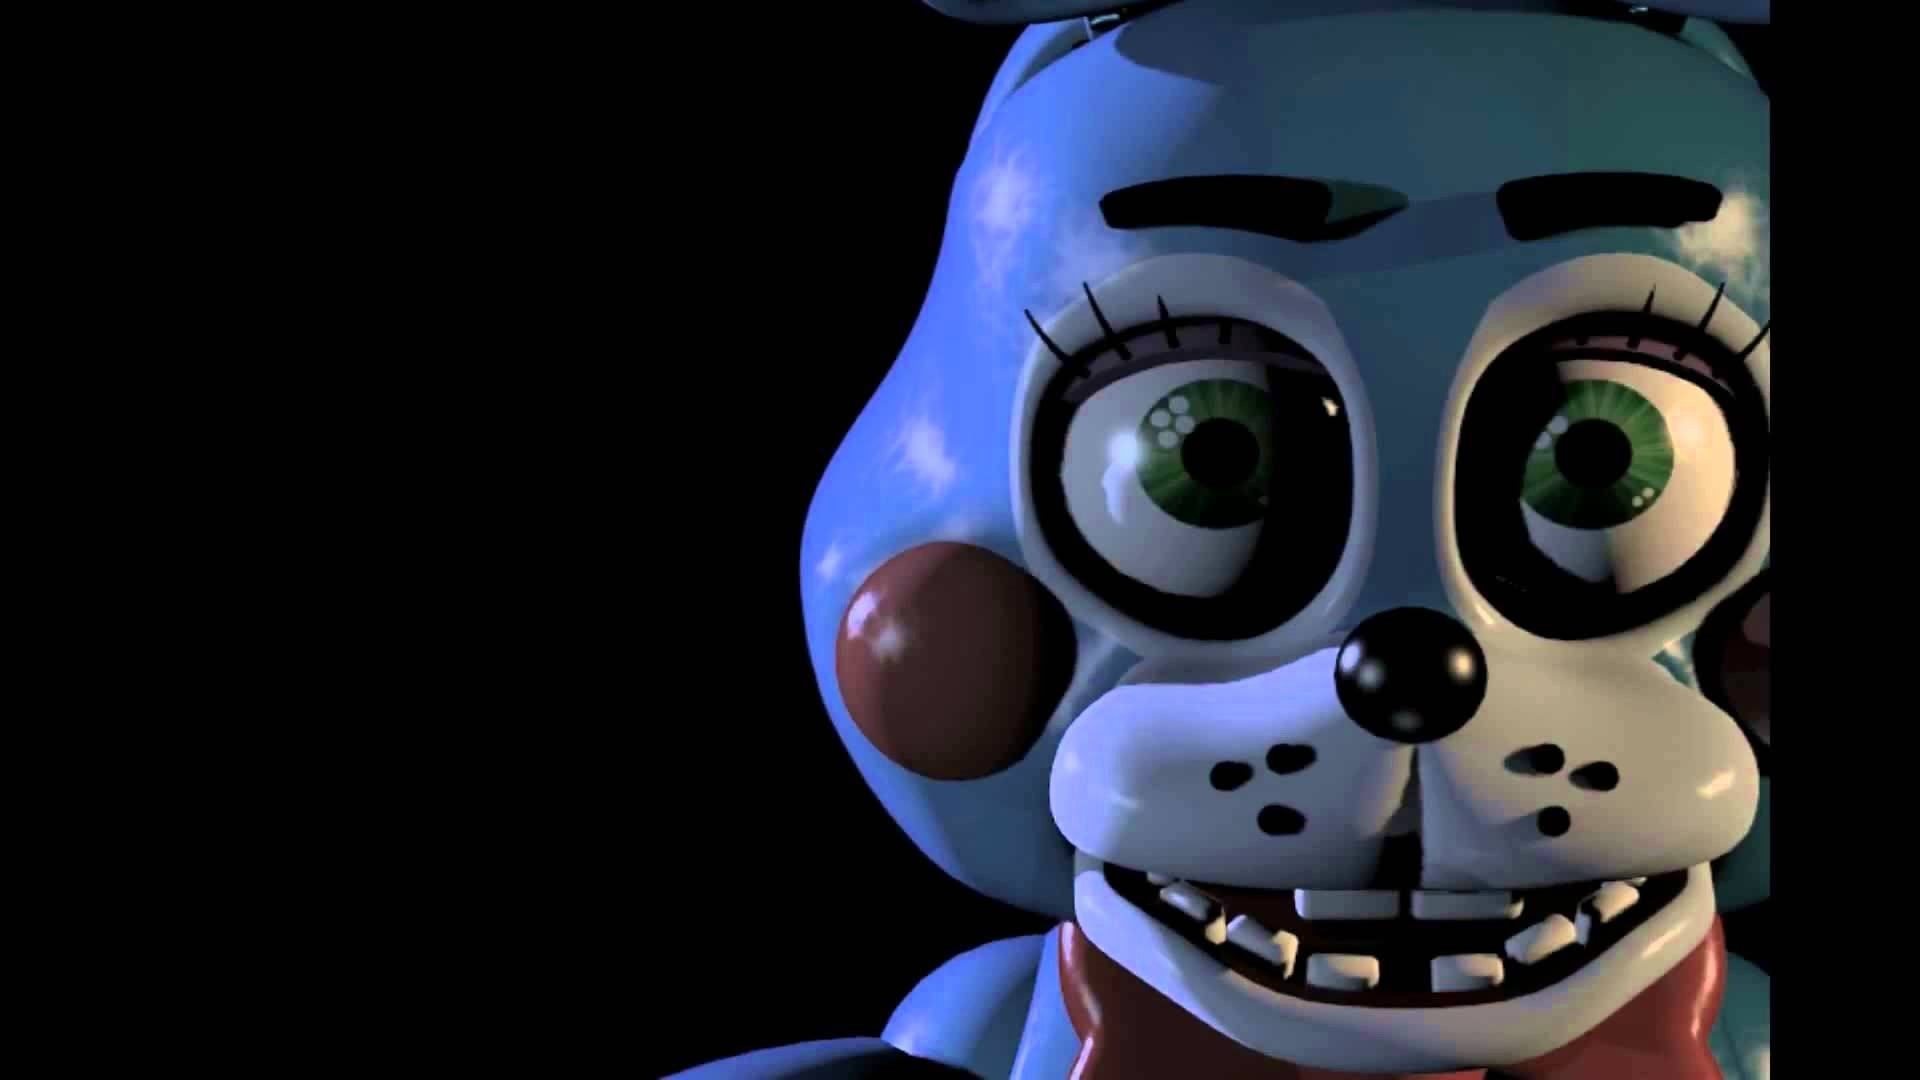 The protagonist of the game Five Nights at Freddy's